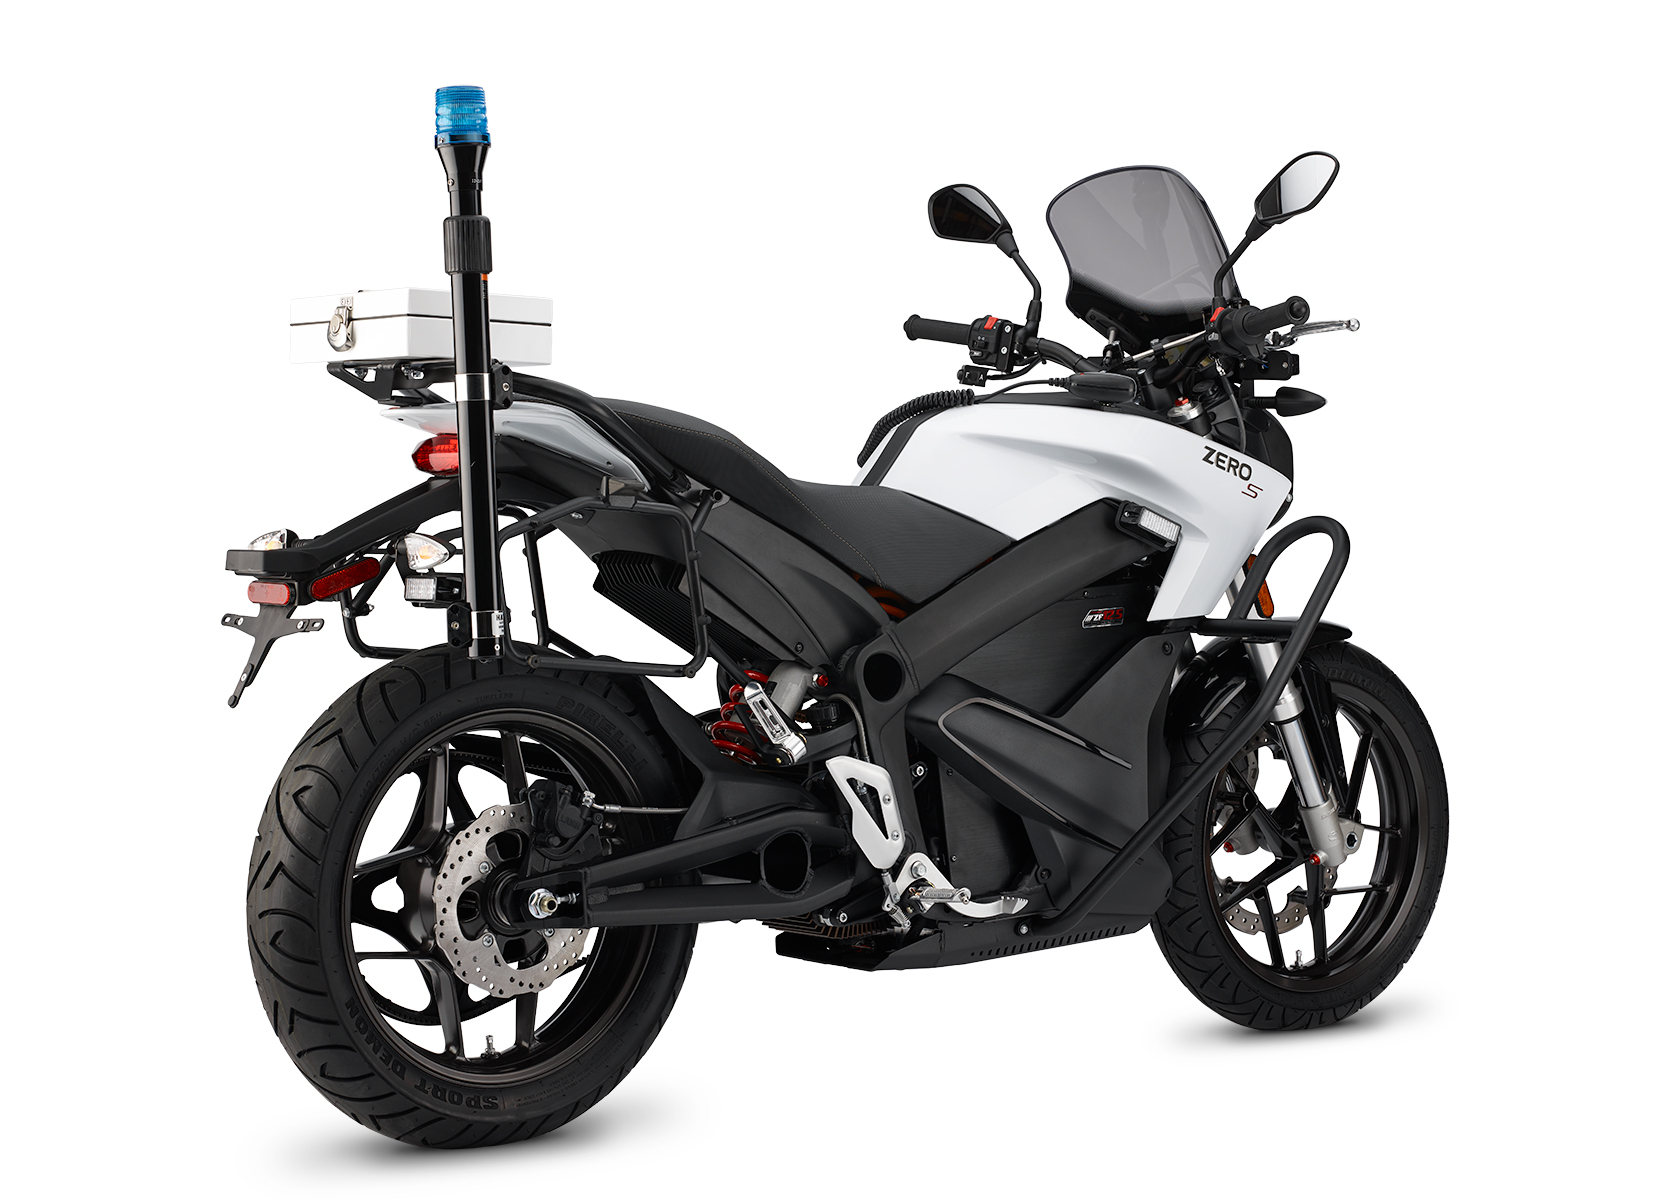 2015 Zero SP Electric Motorcycle: Left Angle, White Background